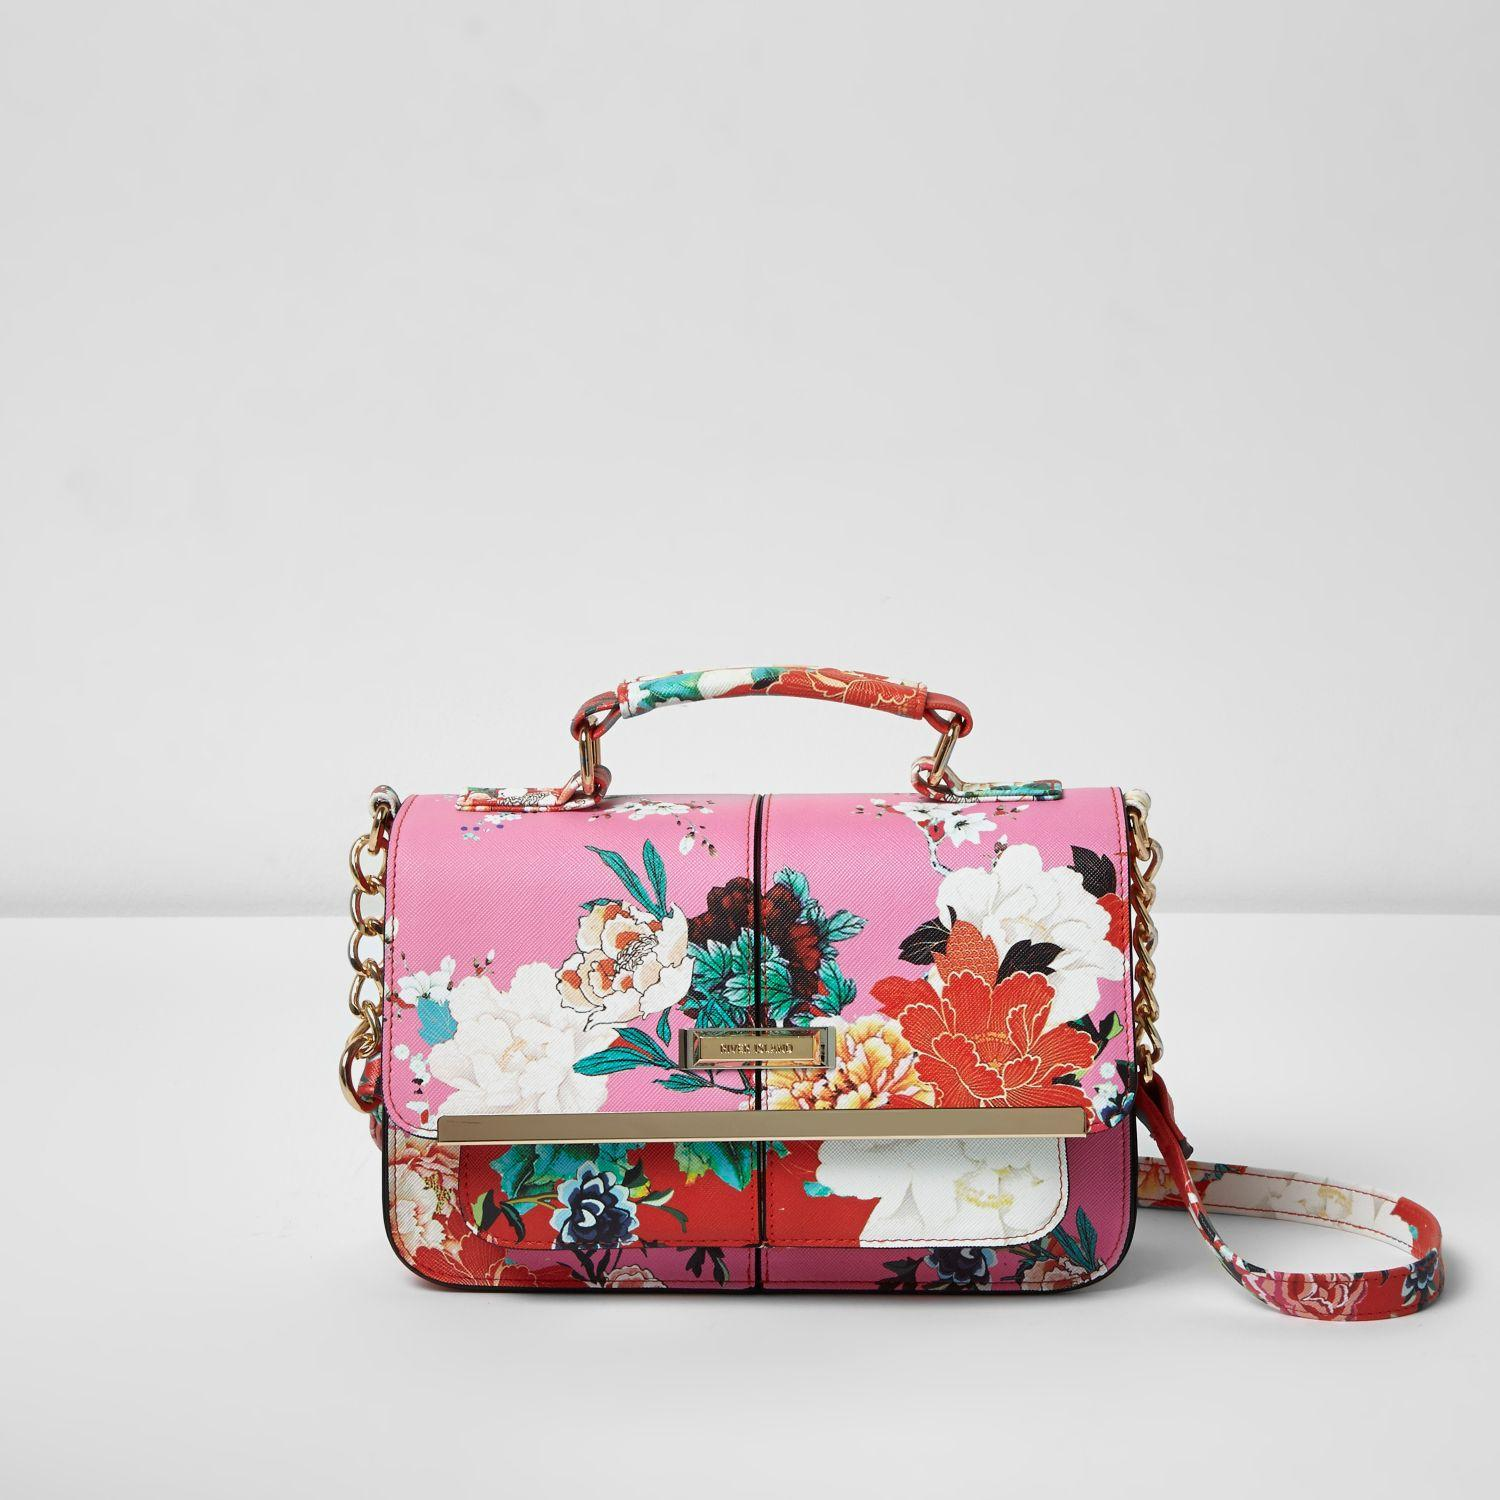 3b03dd419e Lyst - River Island Pink Floral Print Mini Satchel Bag in Pink